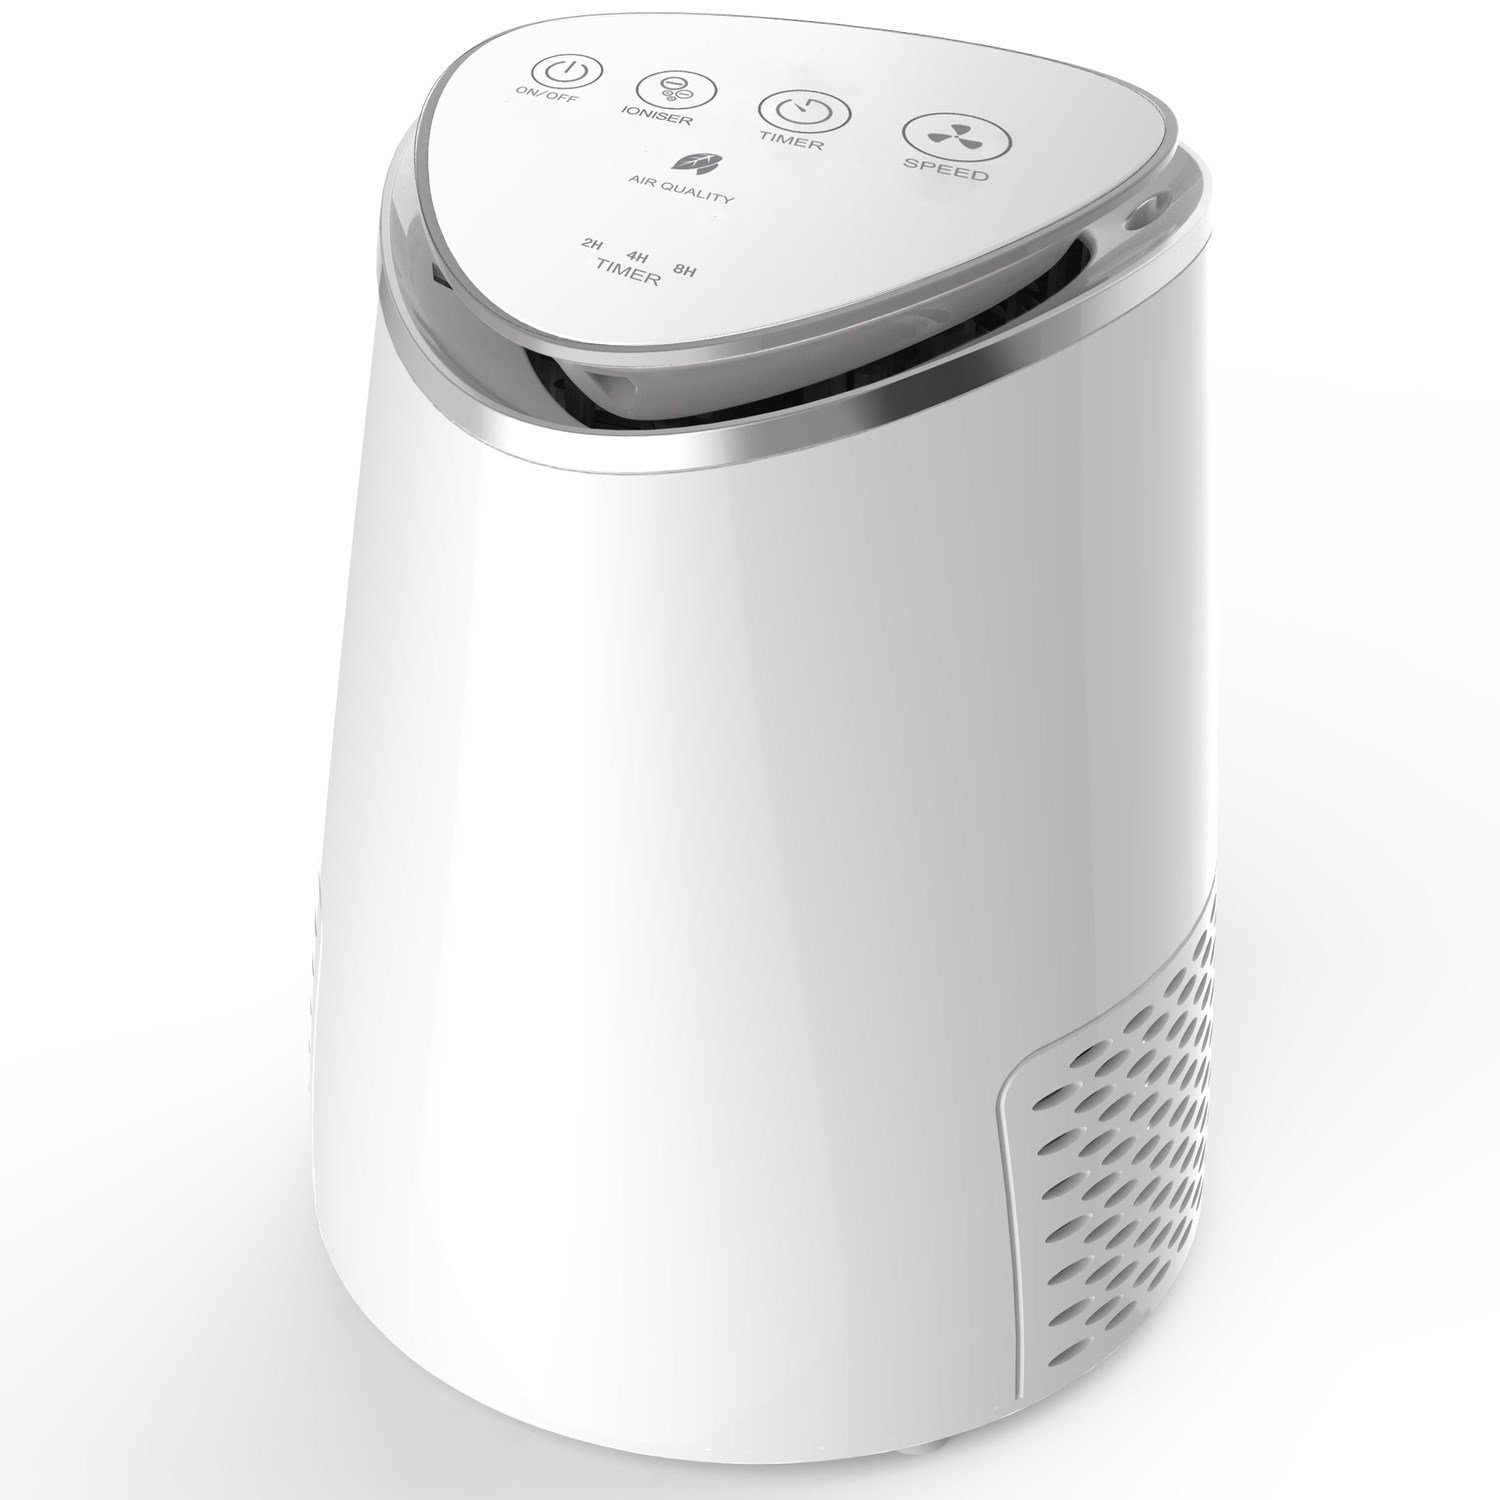 Compact Ultra Quiet Hepa and Plasma Air Purifier with Anti-Bacterial Technology electriQ